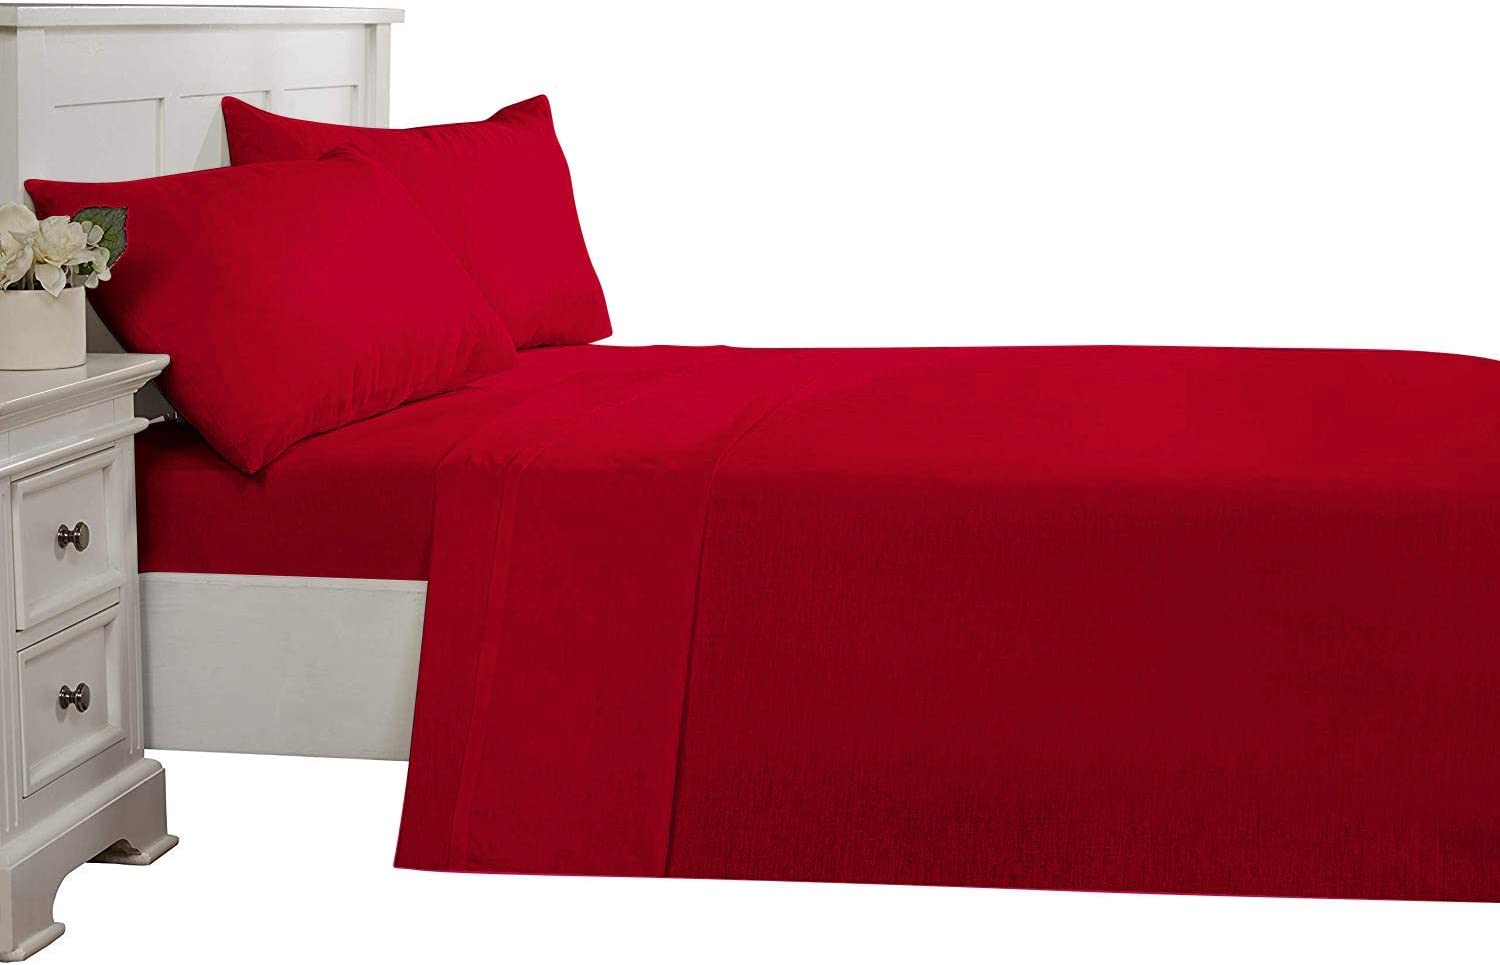 AllinOne Cotton Tucson Mall 3 Piece Flat Sheet Thread Count Topics on TV S 800 Queen Only